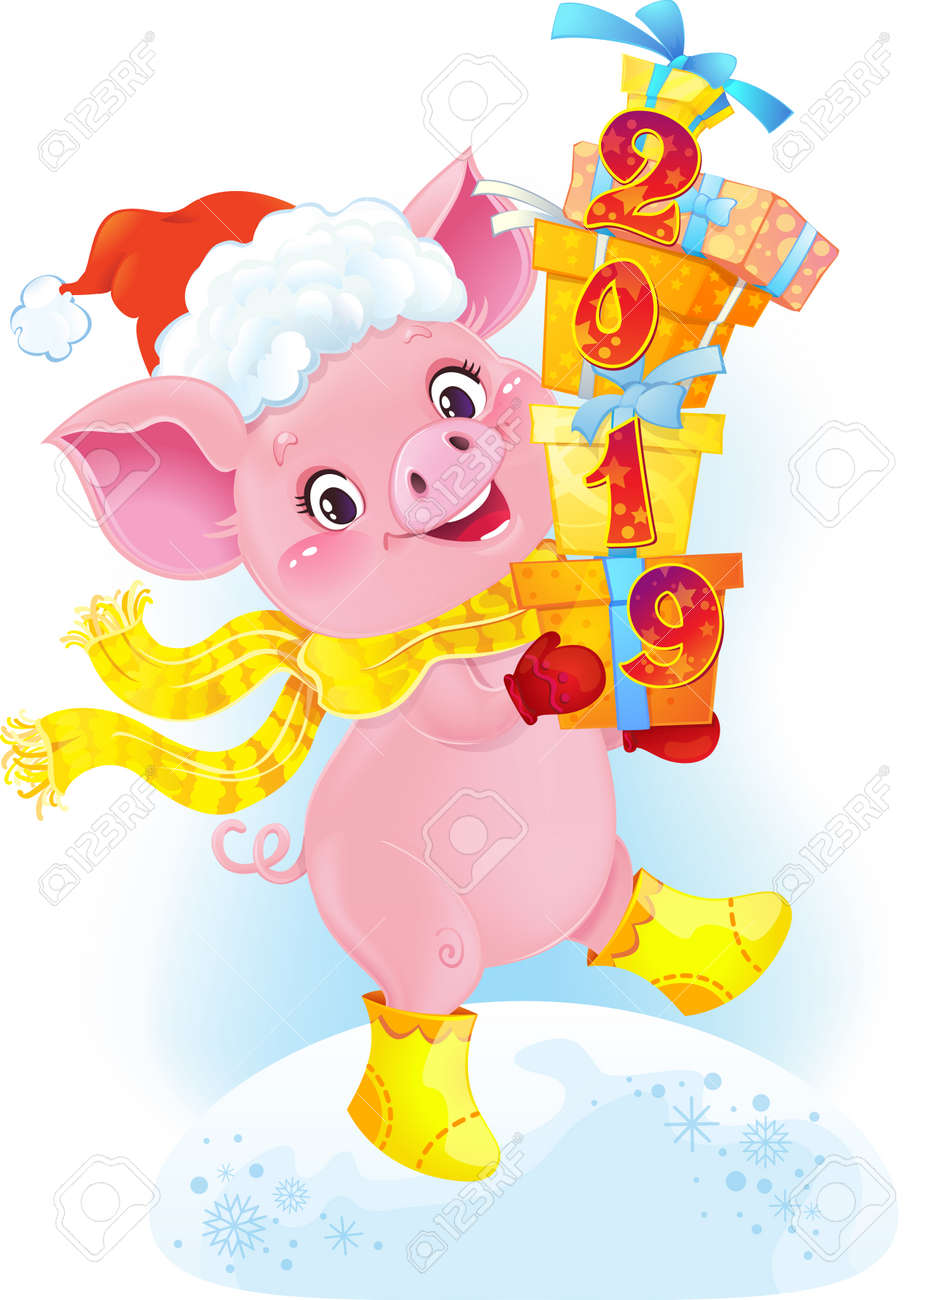 Yellow Earthy Pig with Gift Boxes. Cute Symbol of Chinese Horoscope. Cute Piglet for the Chinese New Year. Pig is a symbol of the approaching New 2019 year. Symbol of Chinese horoscope.Happy 2019 New Year card. Funny piglet congratulates on holiday.Image contains gradients, transparency, blending modes, meshes. - 111999538